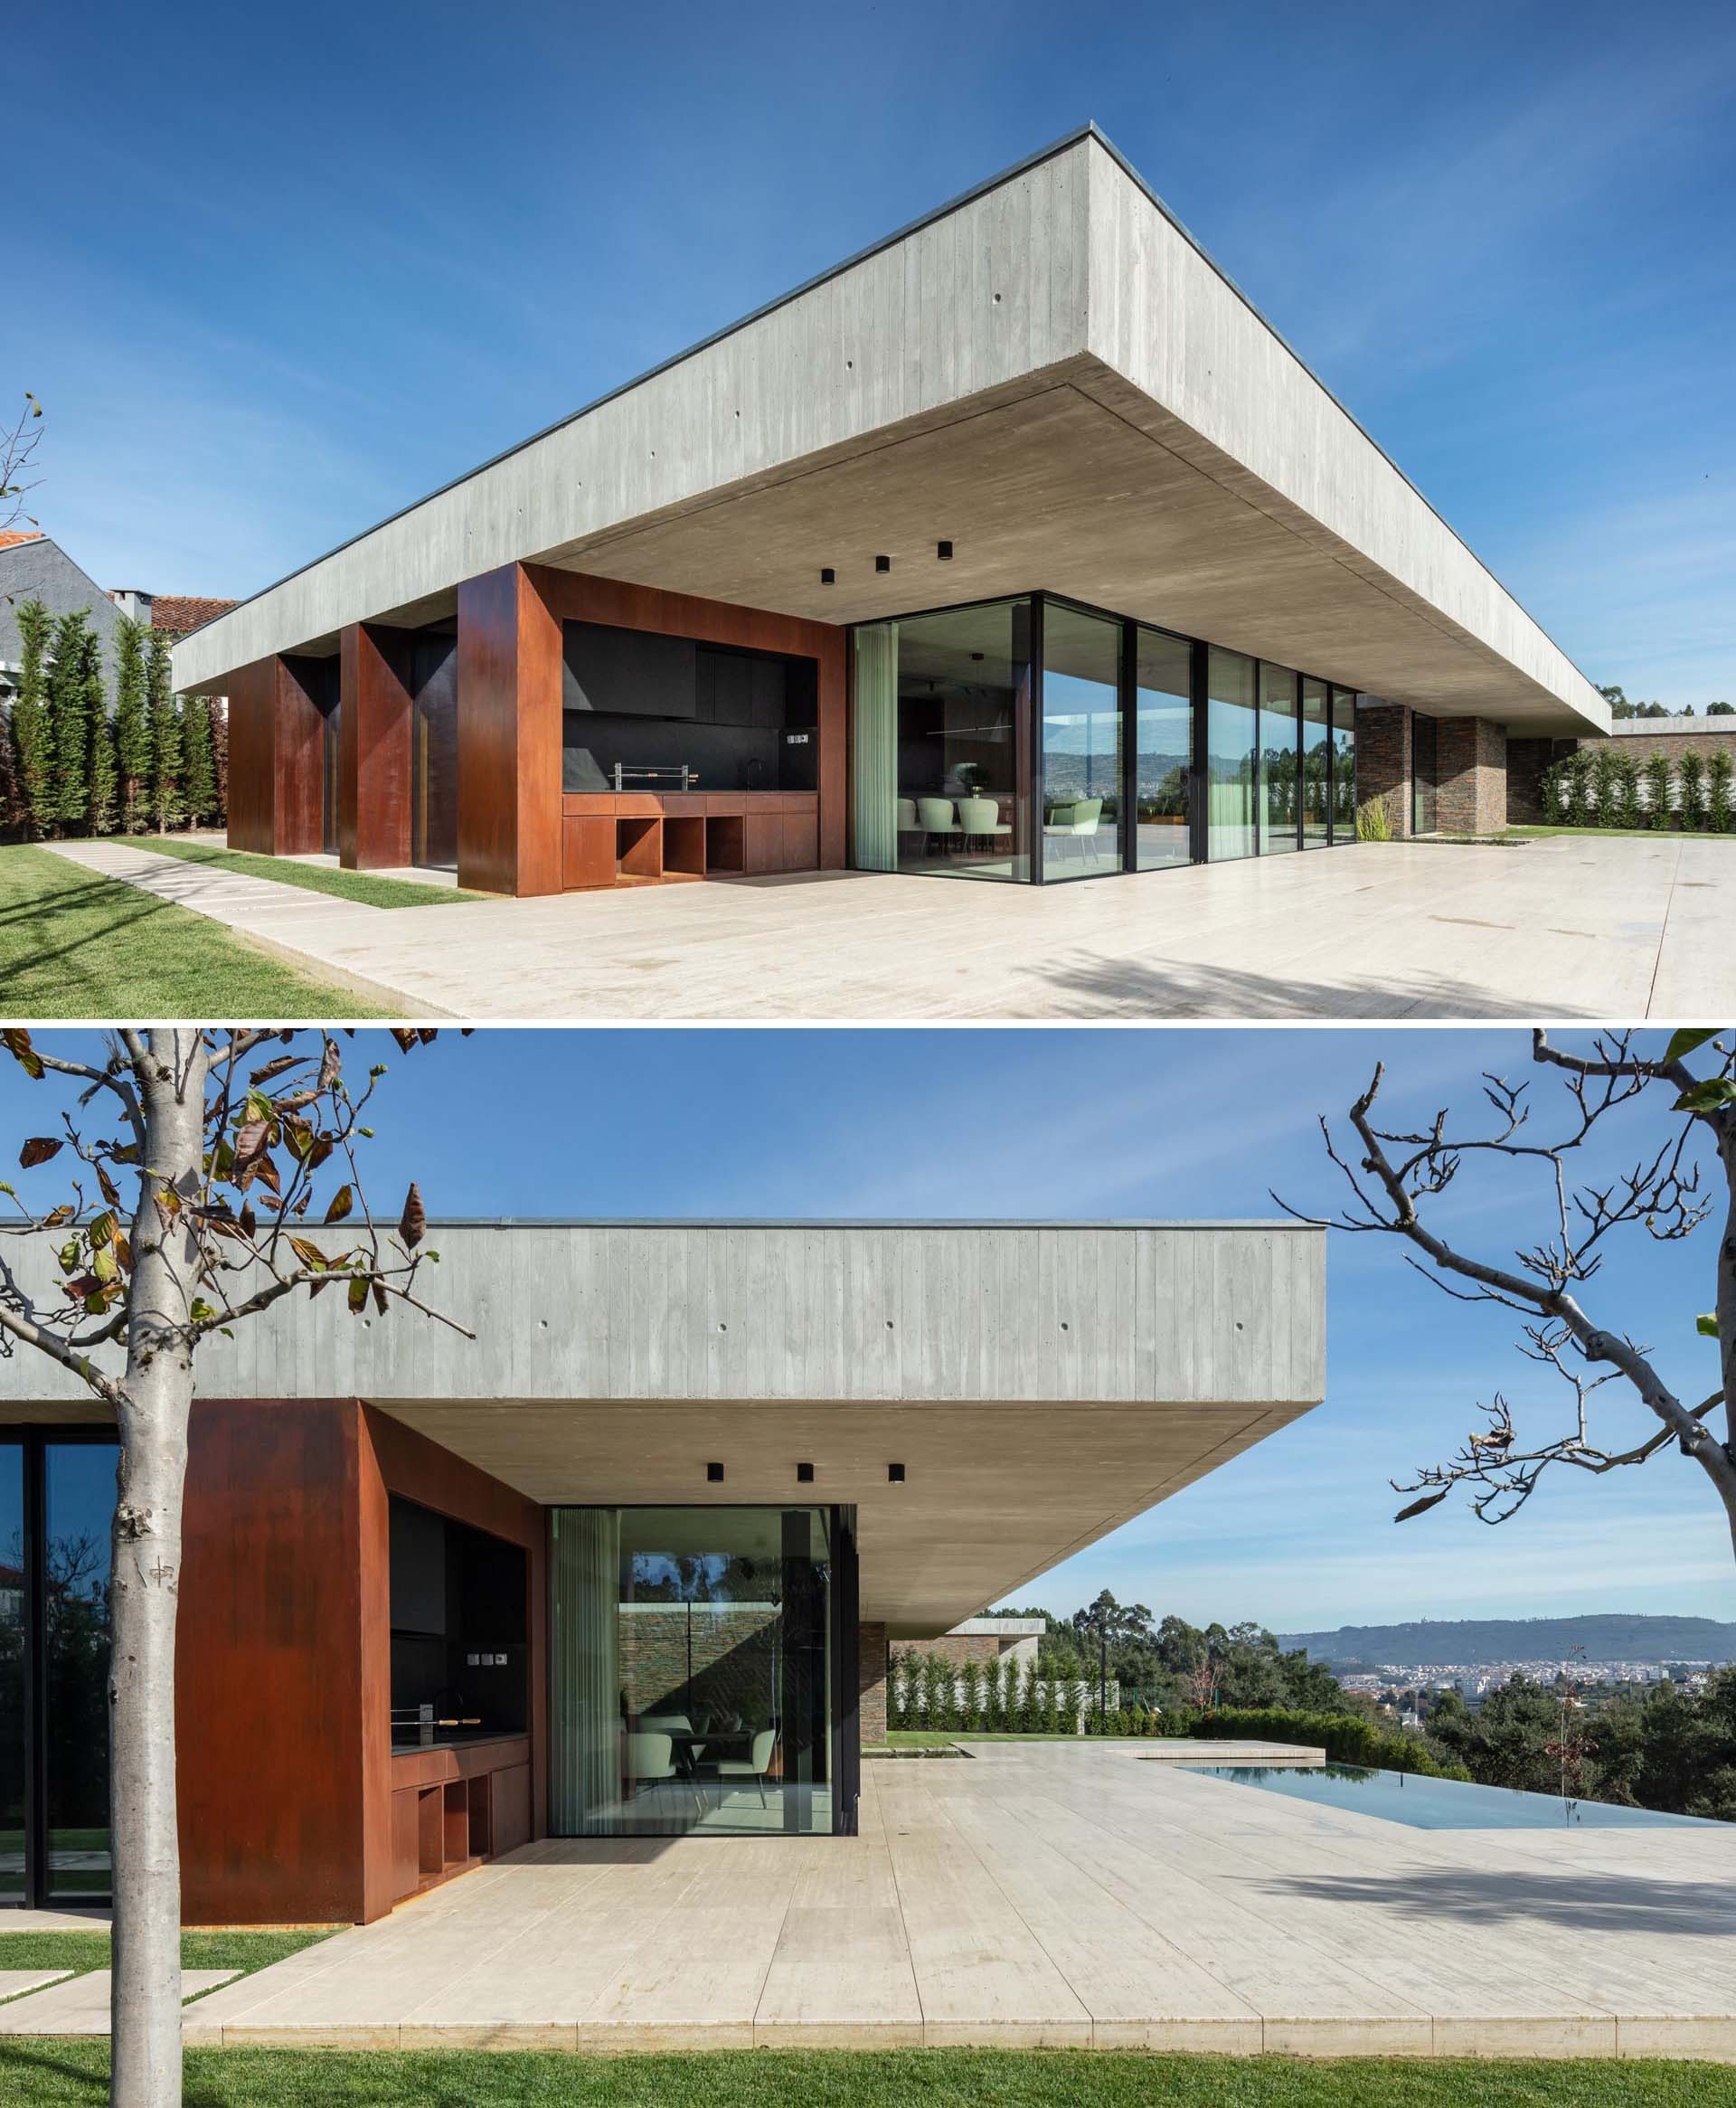 A modern concrete home with glass walls, an expansive patio, and a swimming pool.